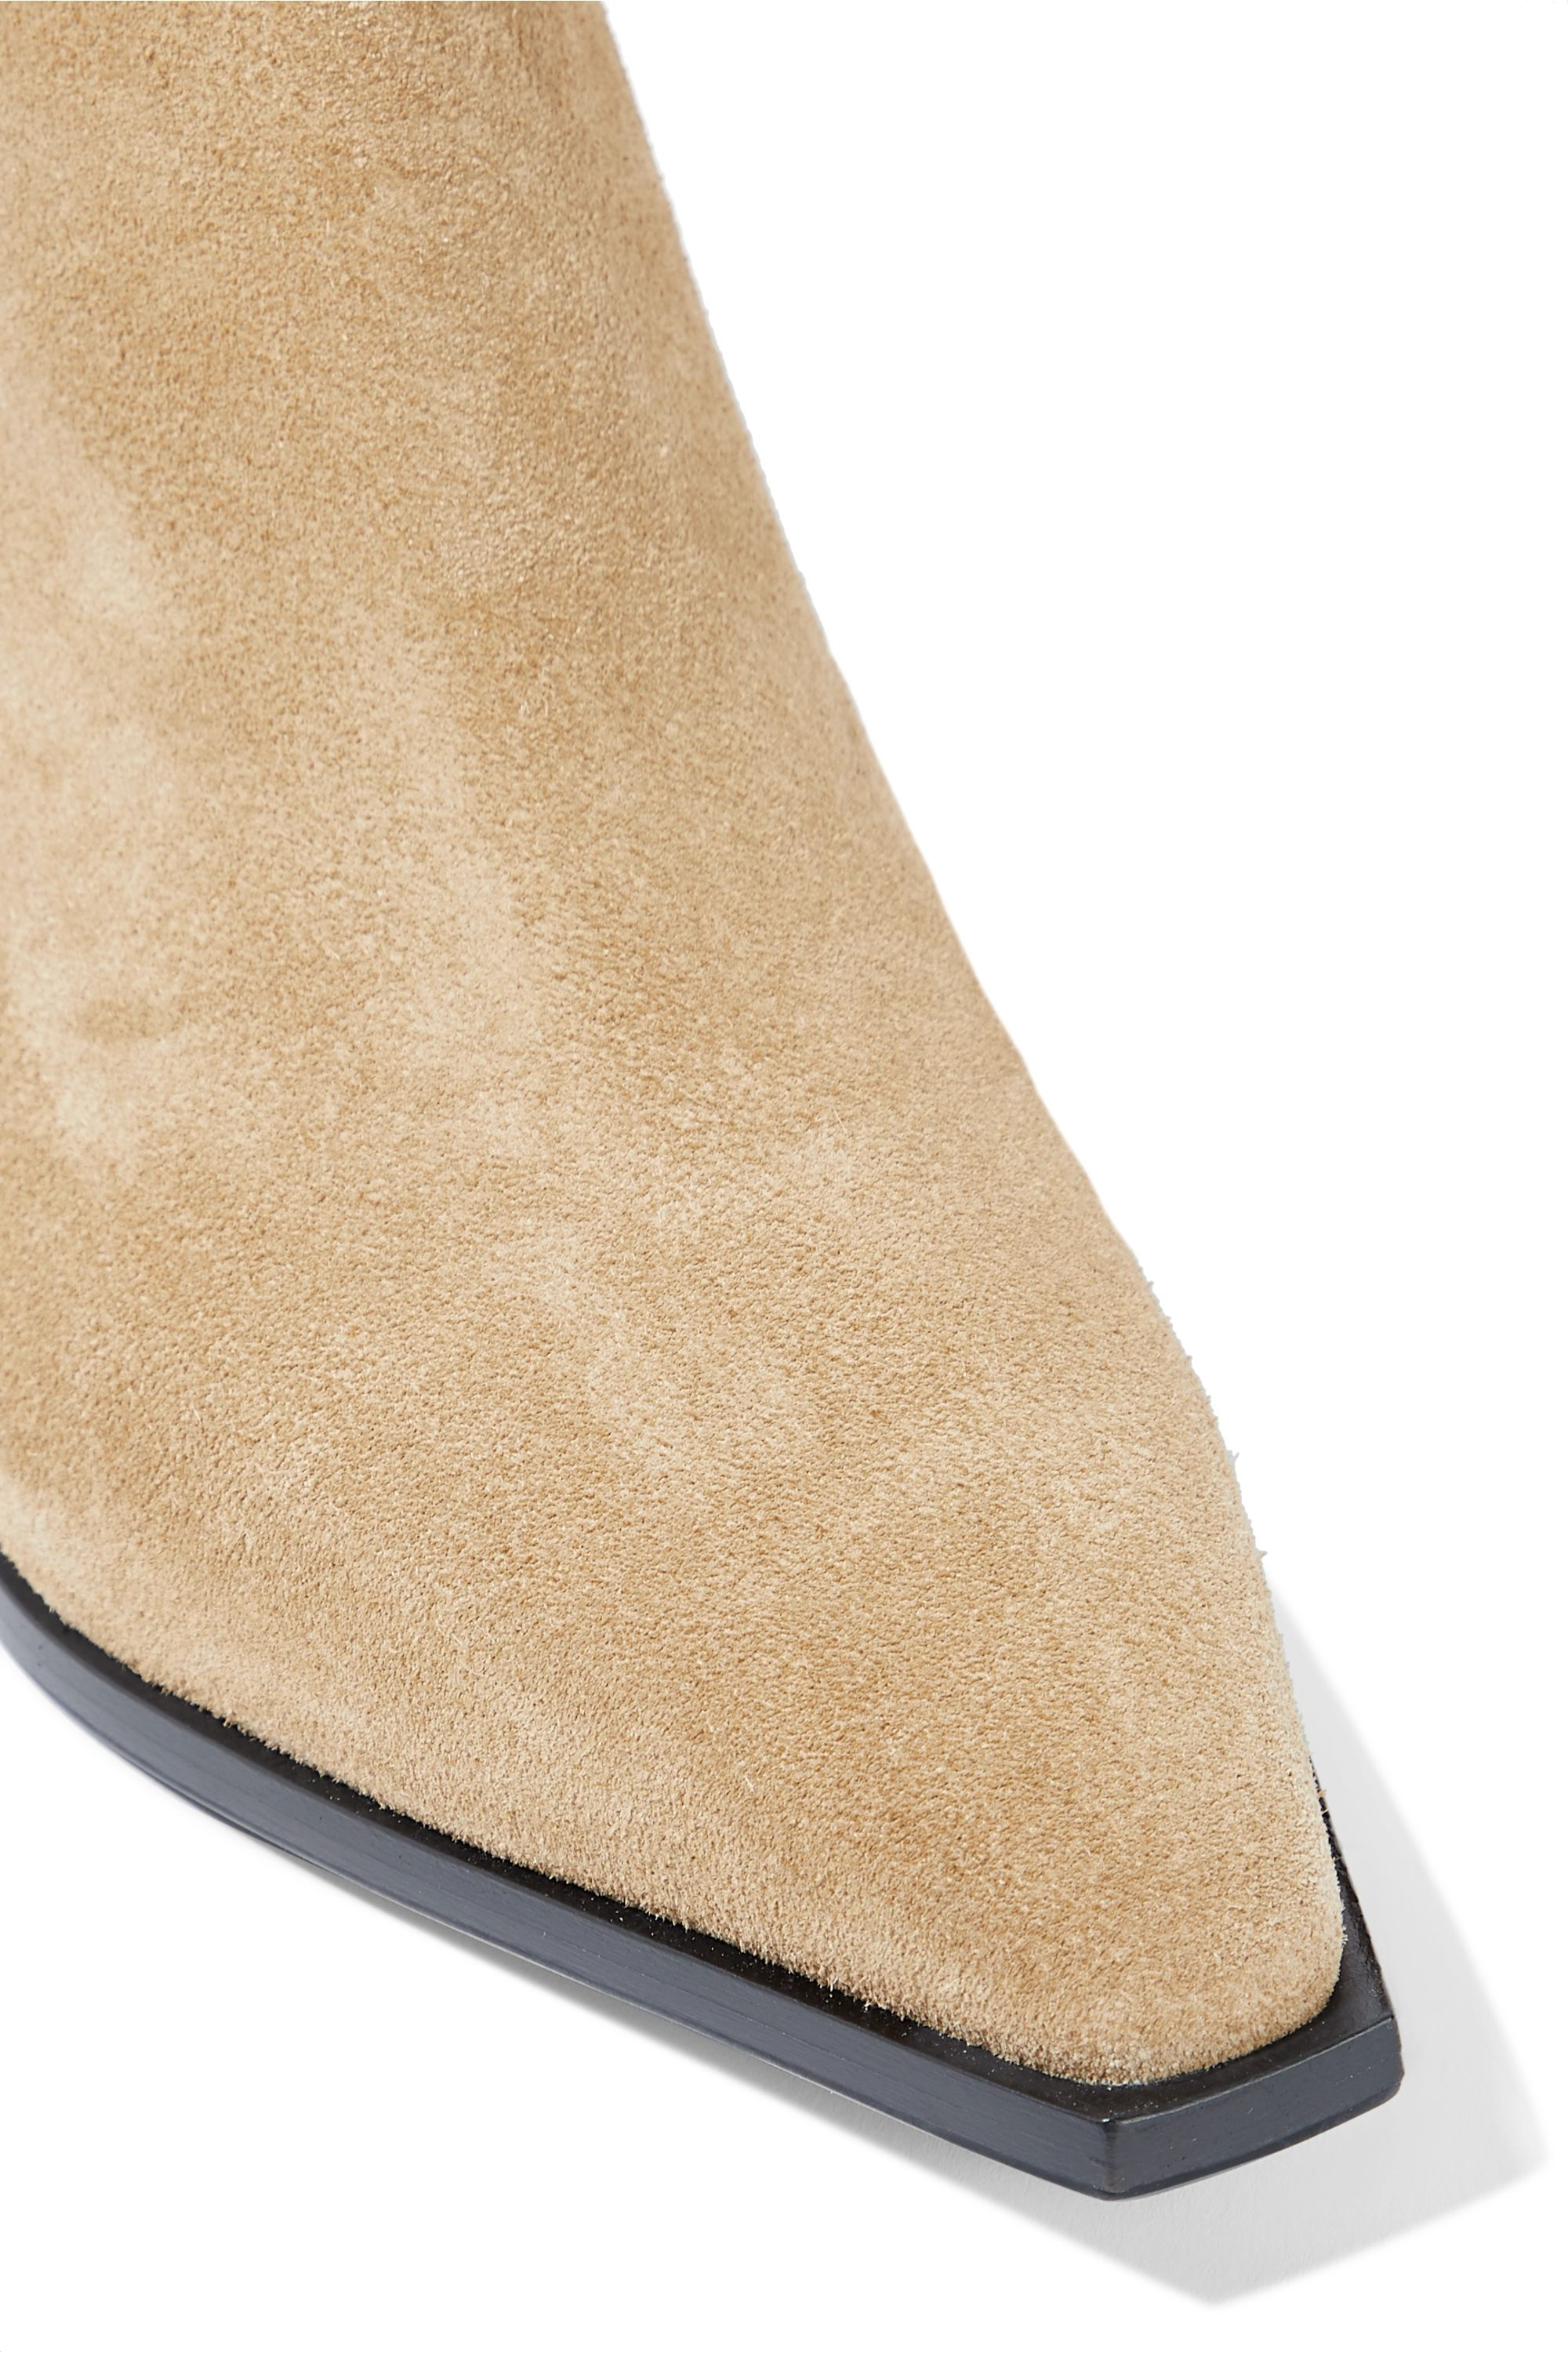 aeyde Kate suede ankle boots